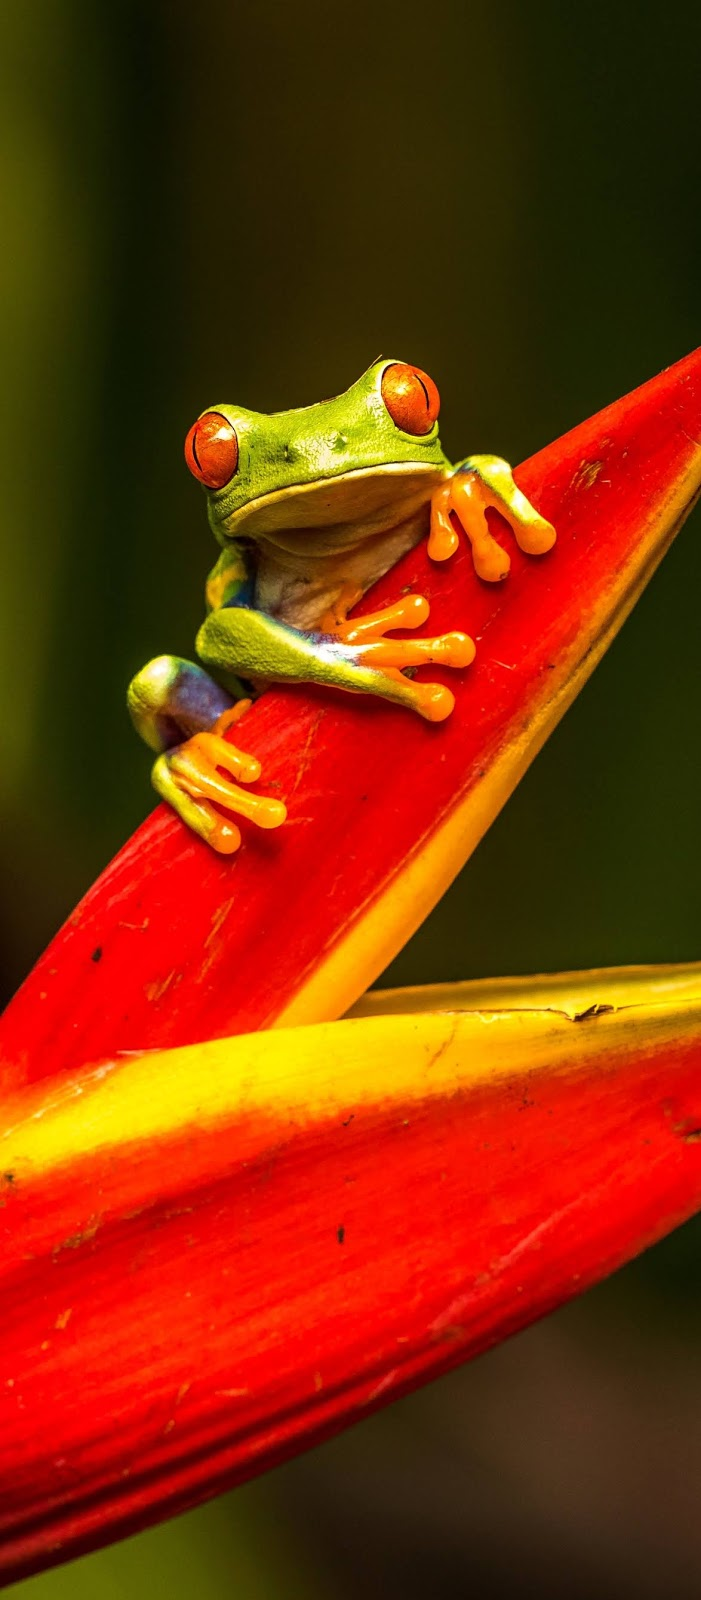 A tree frog on a plant.